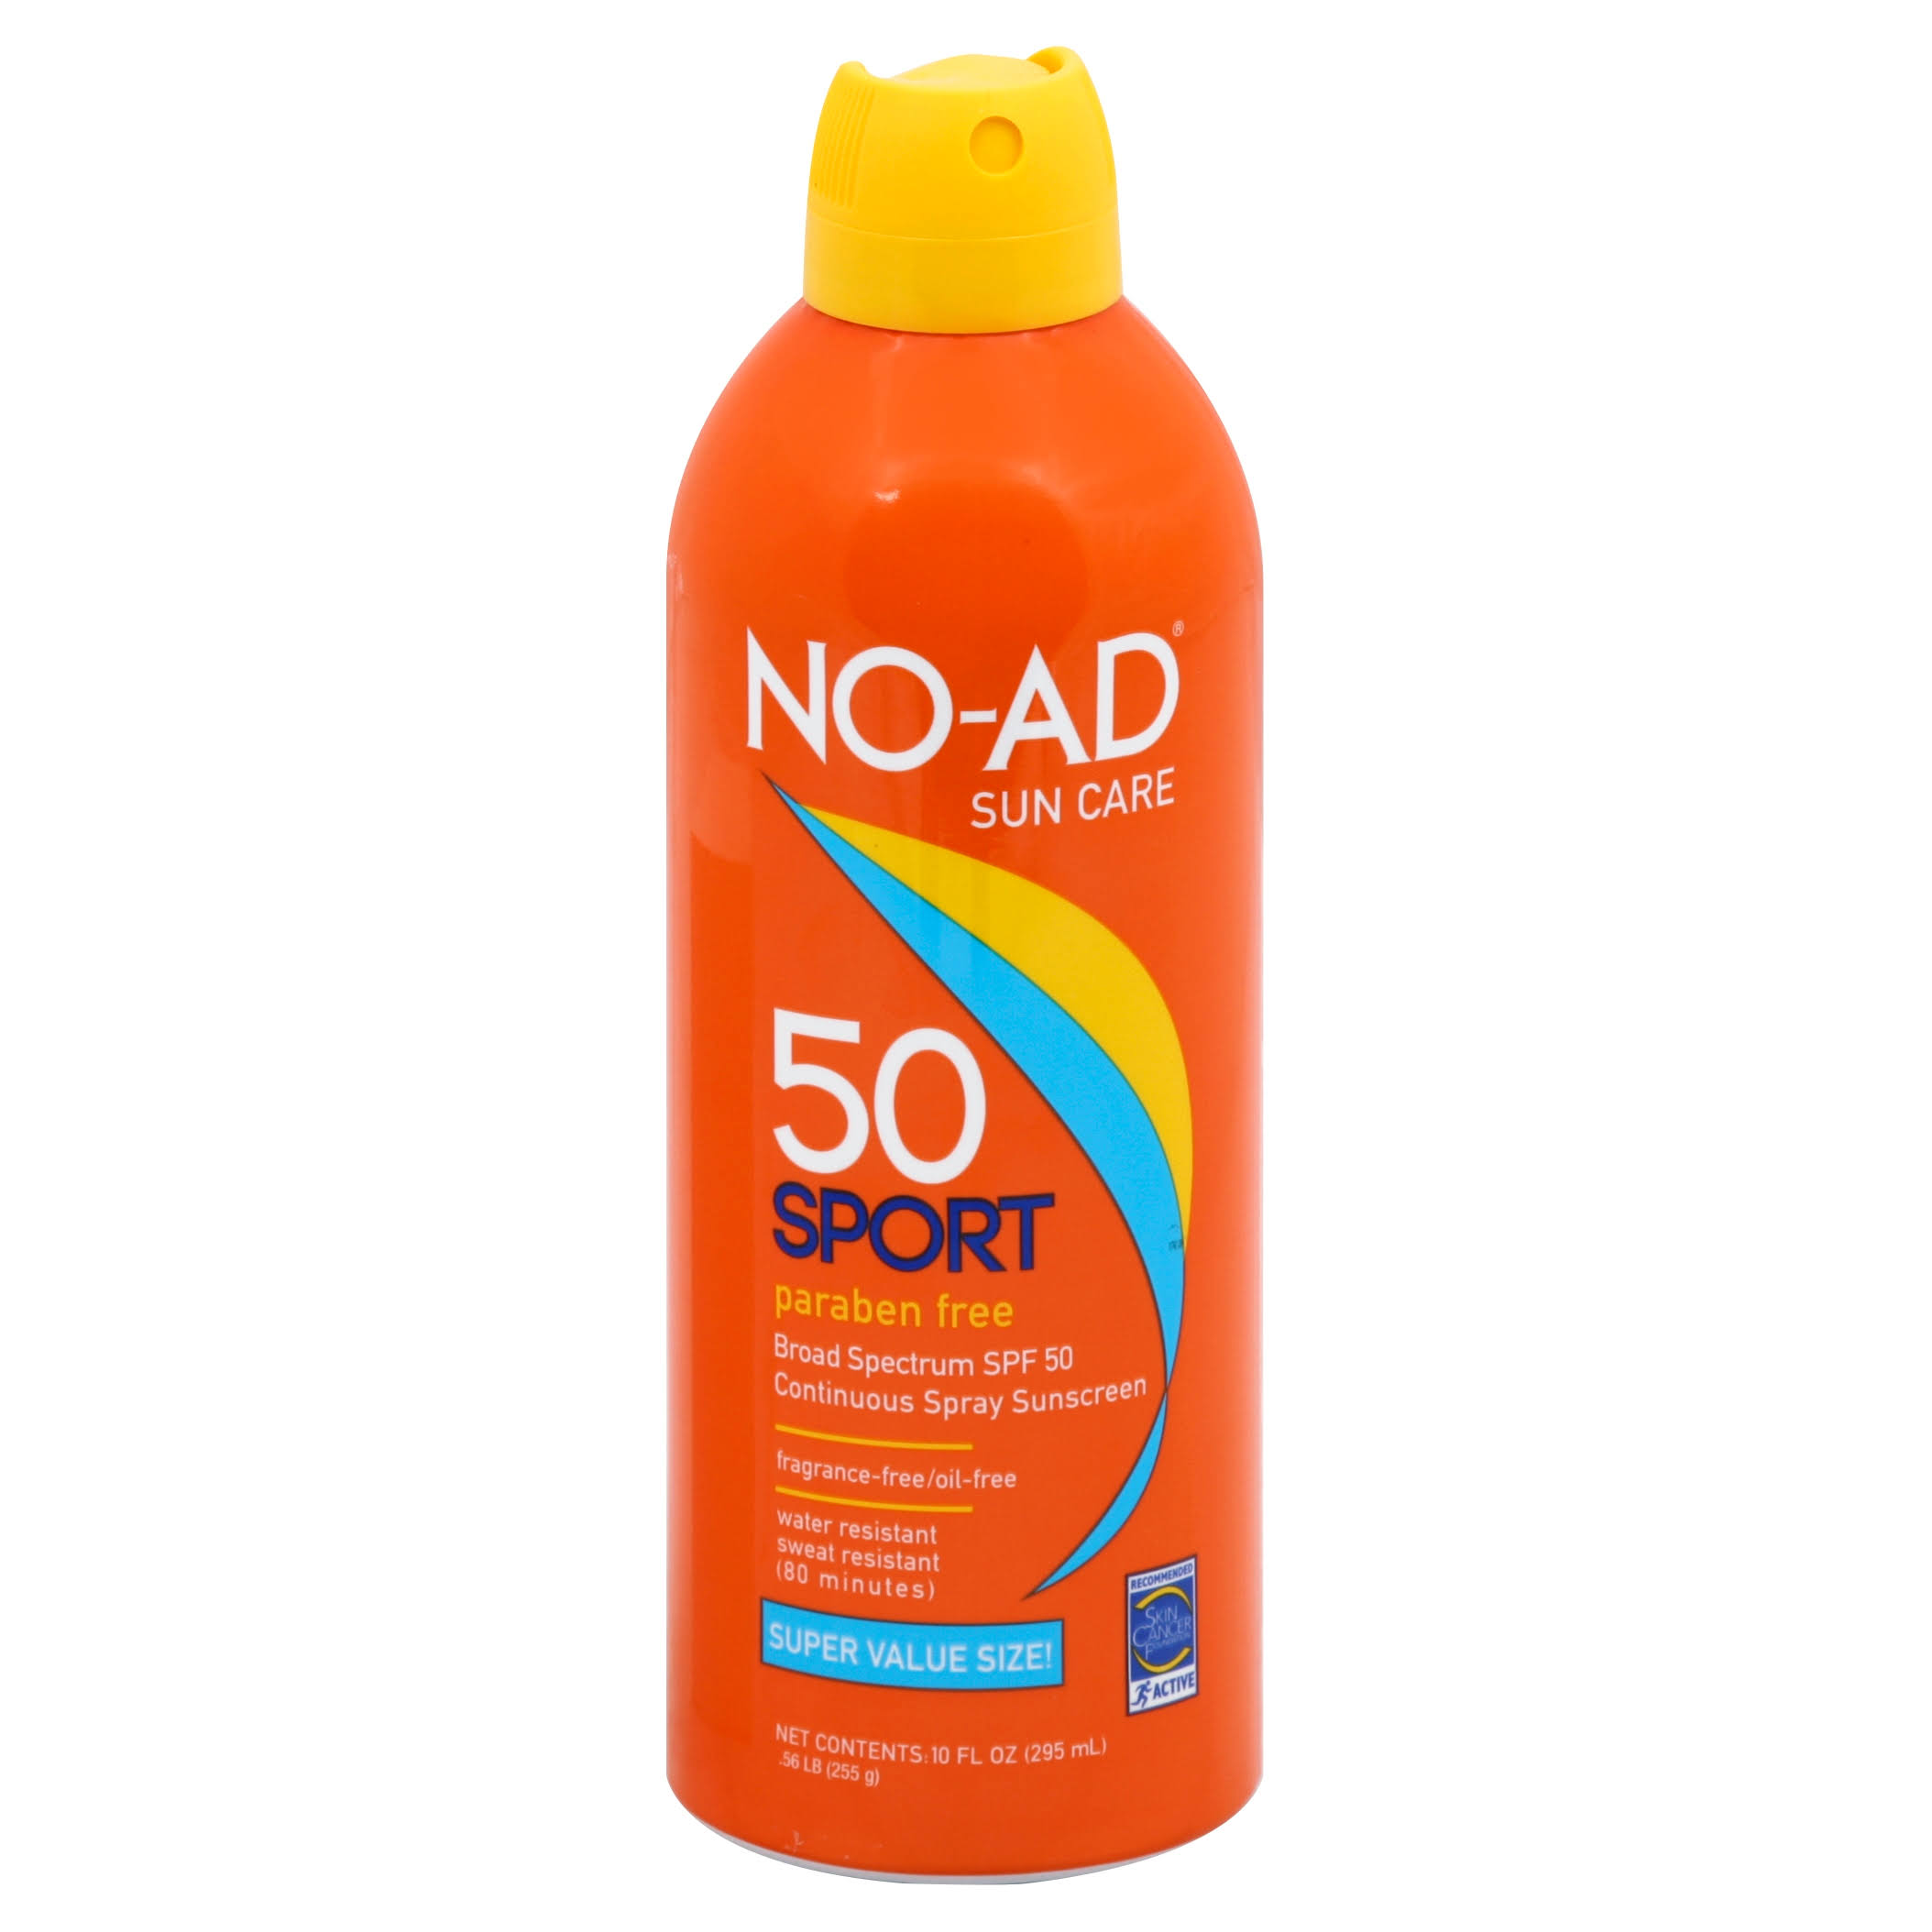 No Ad Sunscreen, Sport, Continuous Spray, Broad Spectrum SPF 50, Super Value Size! - 10 fl oz